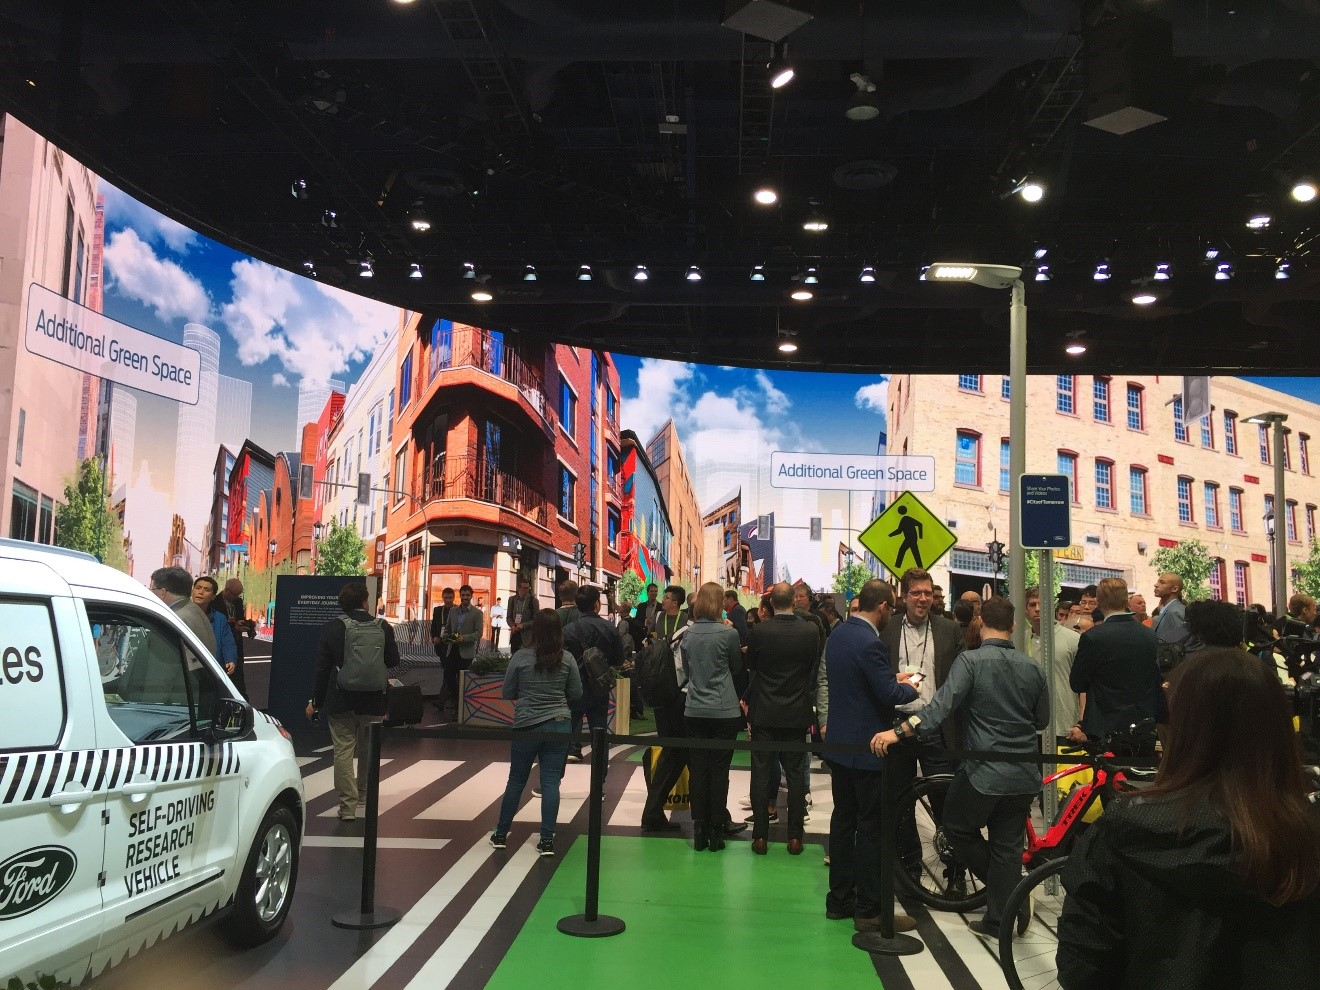 Ford built a small indoor street to showcase its vision of integrated mobility including cars, bikes, pedestrians and Ford self-driving vehicles. Integrated mobility was also the topic of Ford CEO Jim Hackett's keynote address. Hackett talked about shared transportation and smart cities to help with the development of autonomous driving and connectivity.